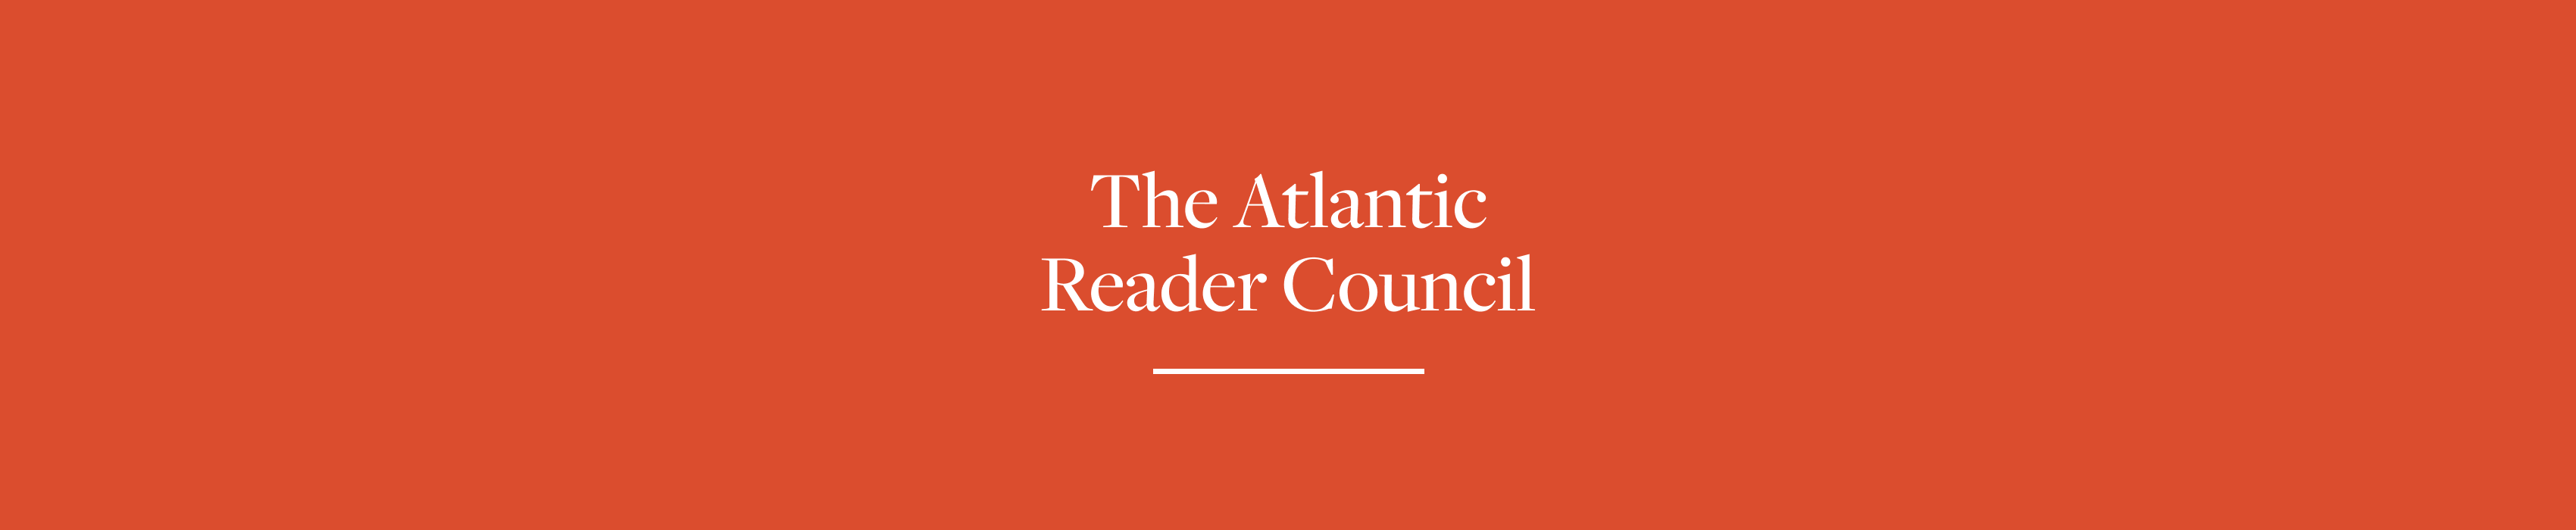 The Atlantic Reader Council